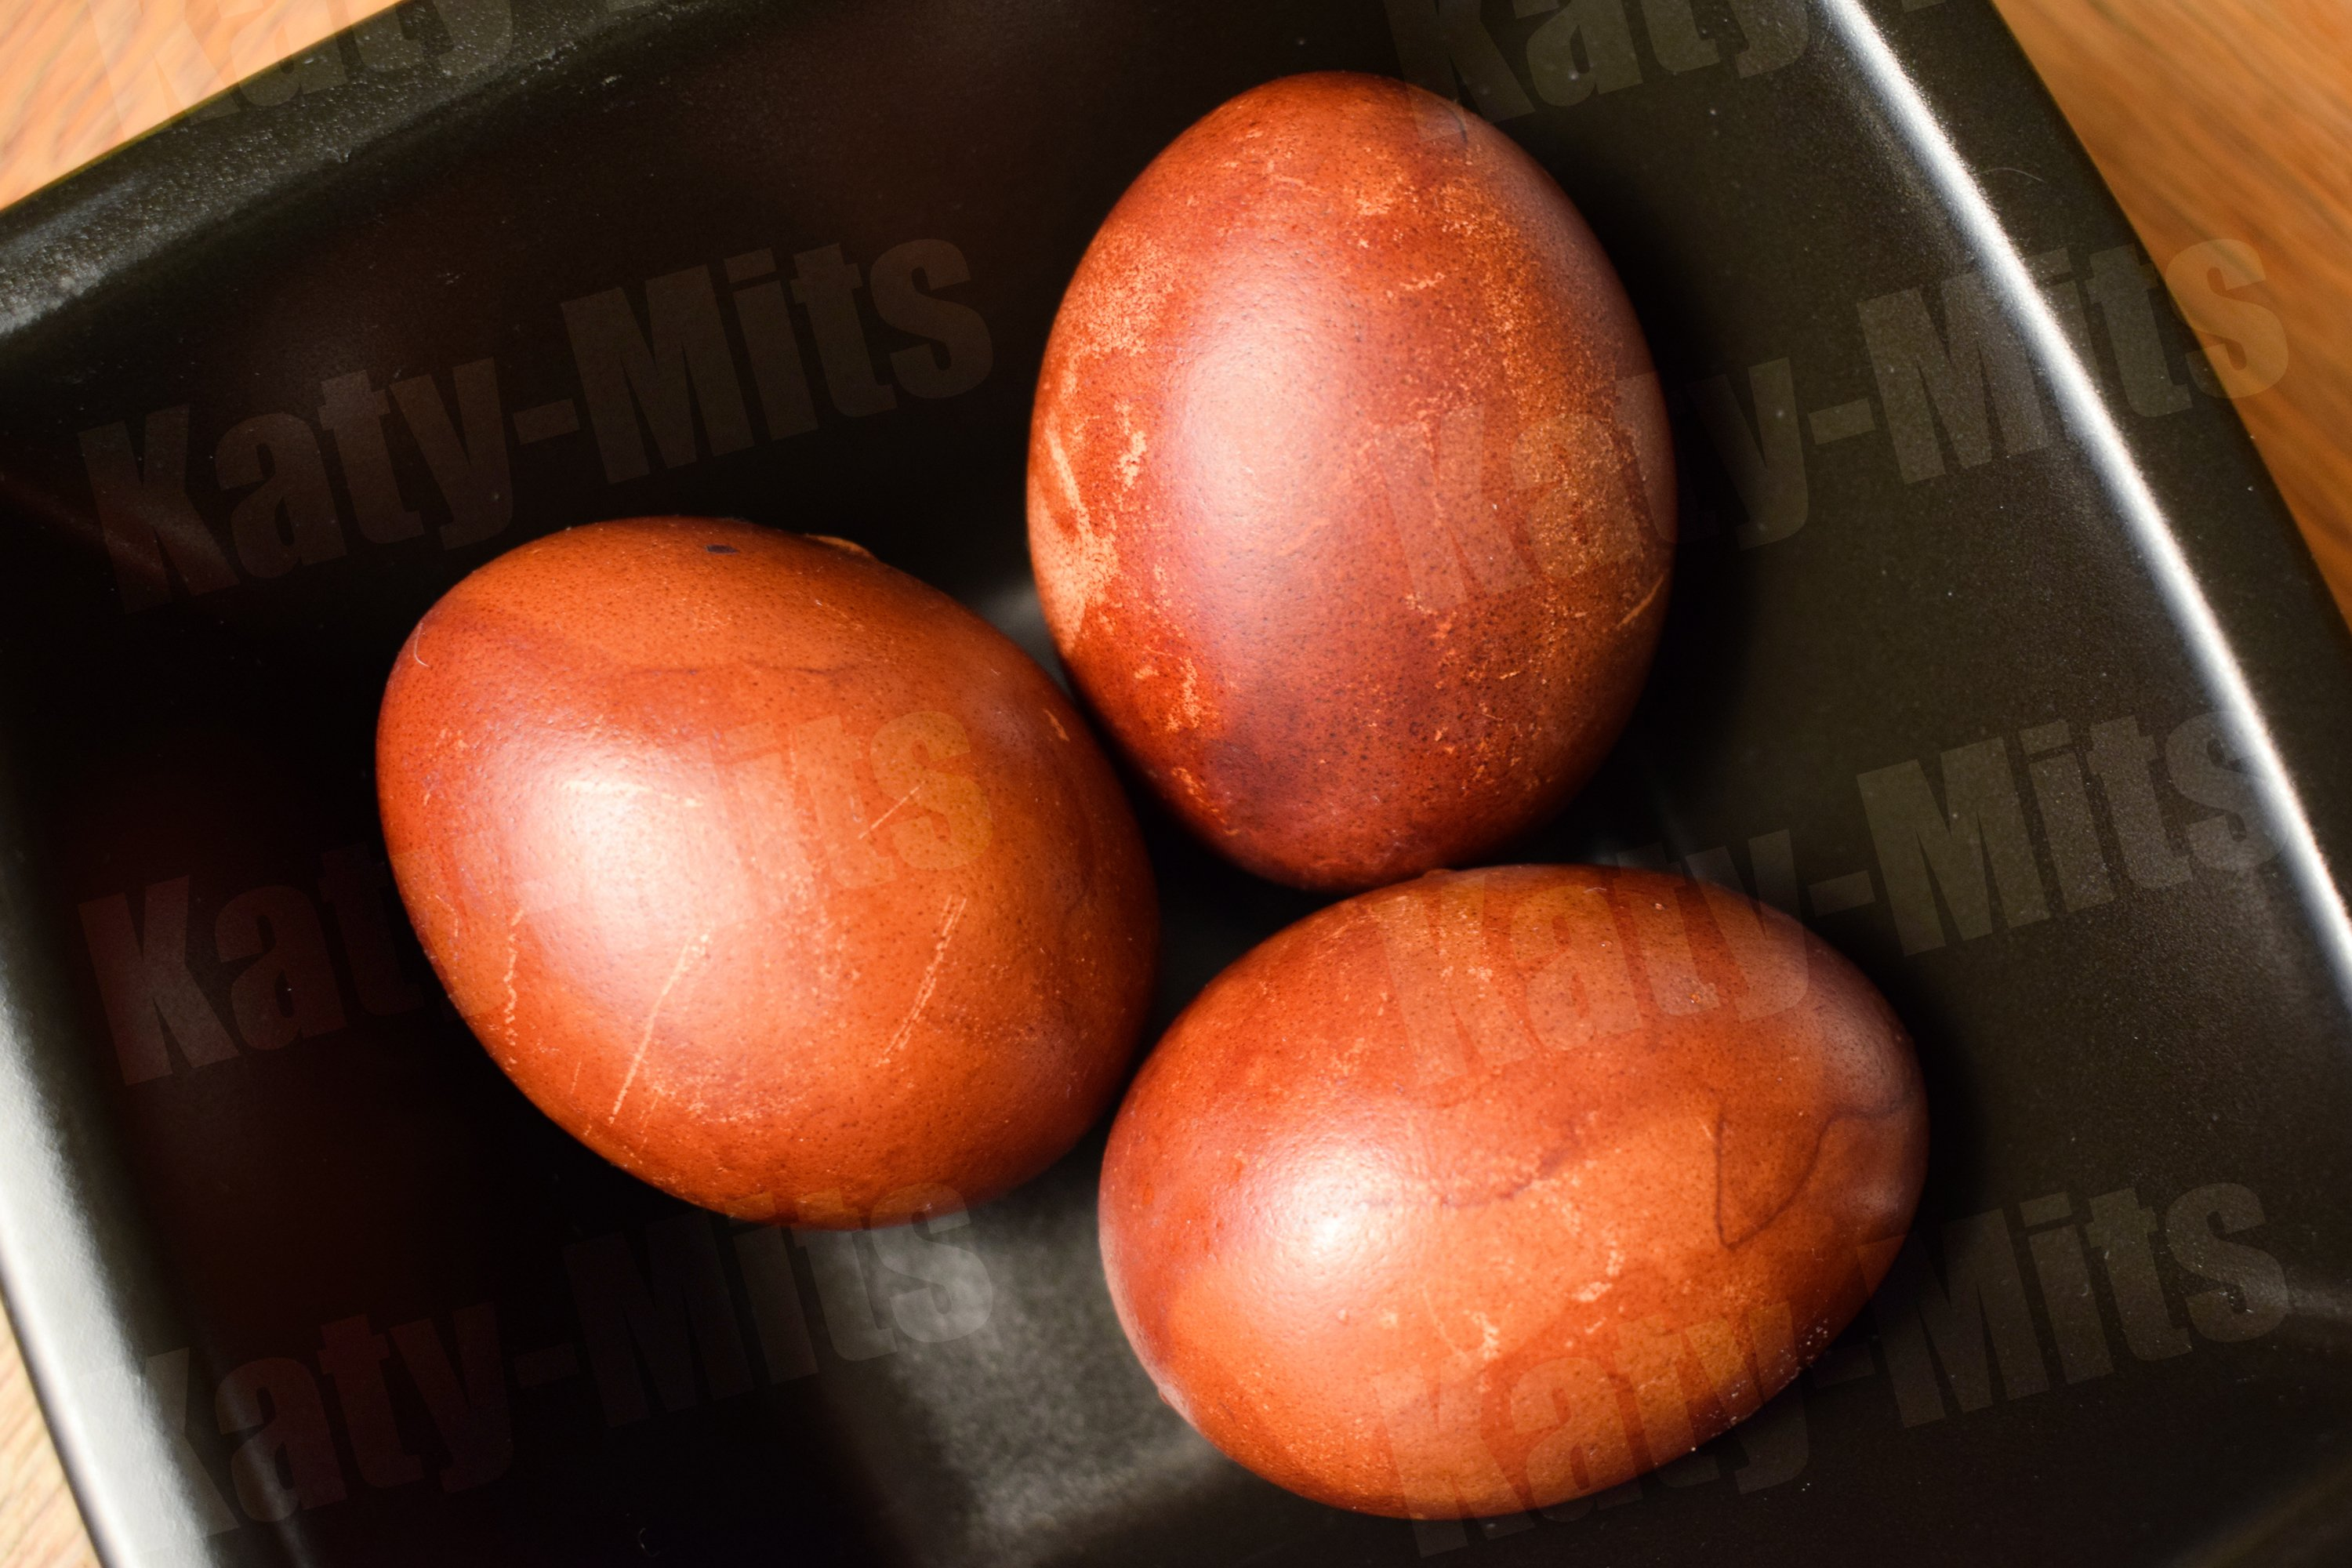 3 naturally colored Easter eggs in black bowl on wooden tabl example image 1